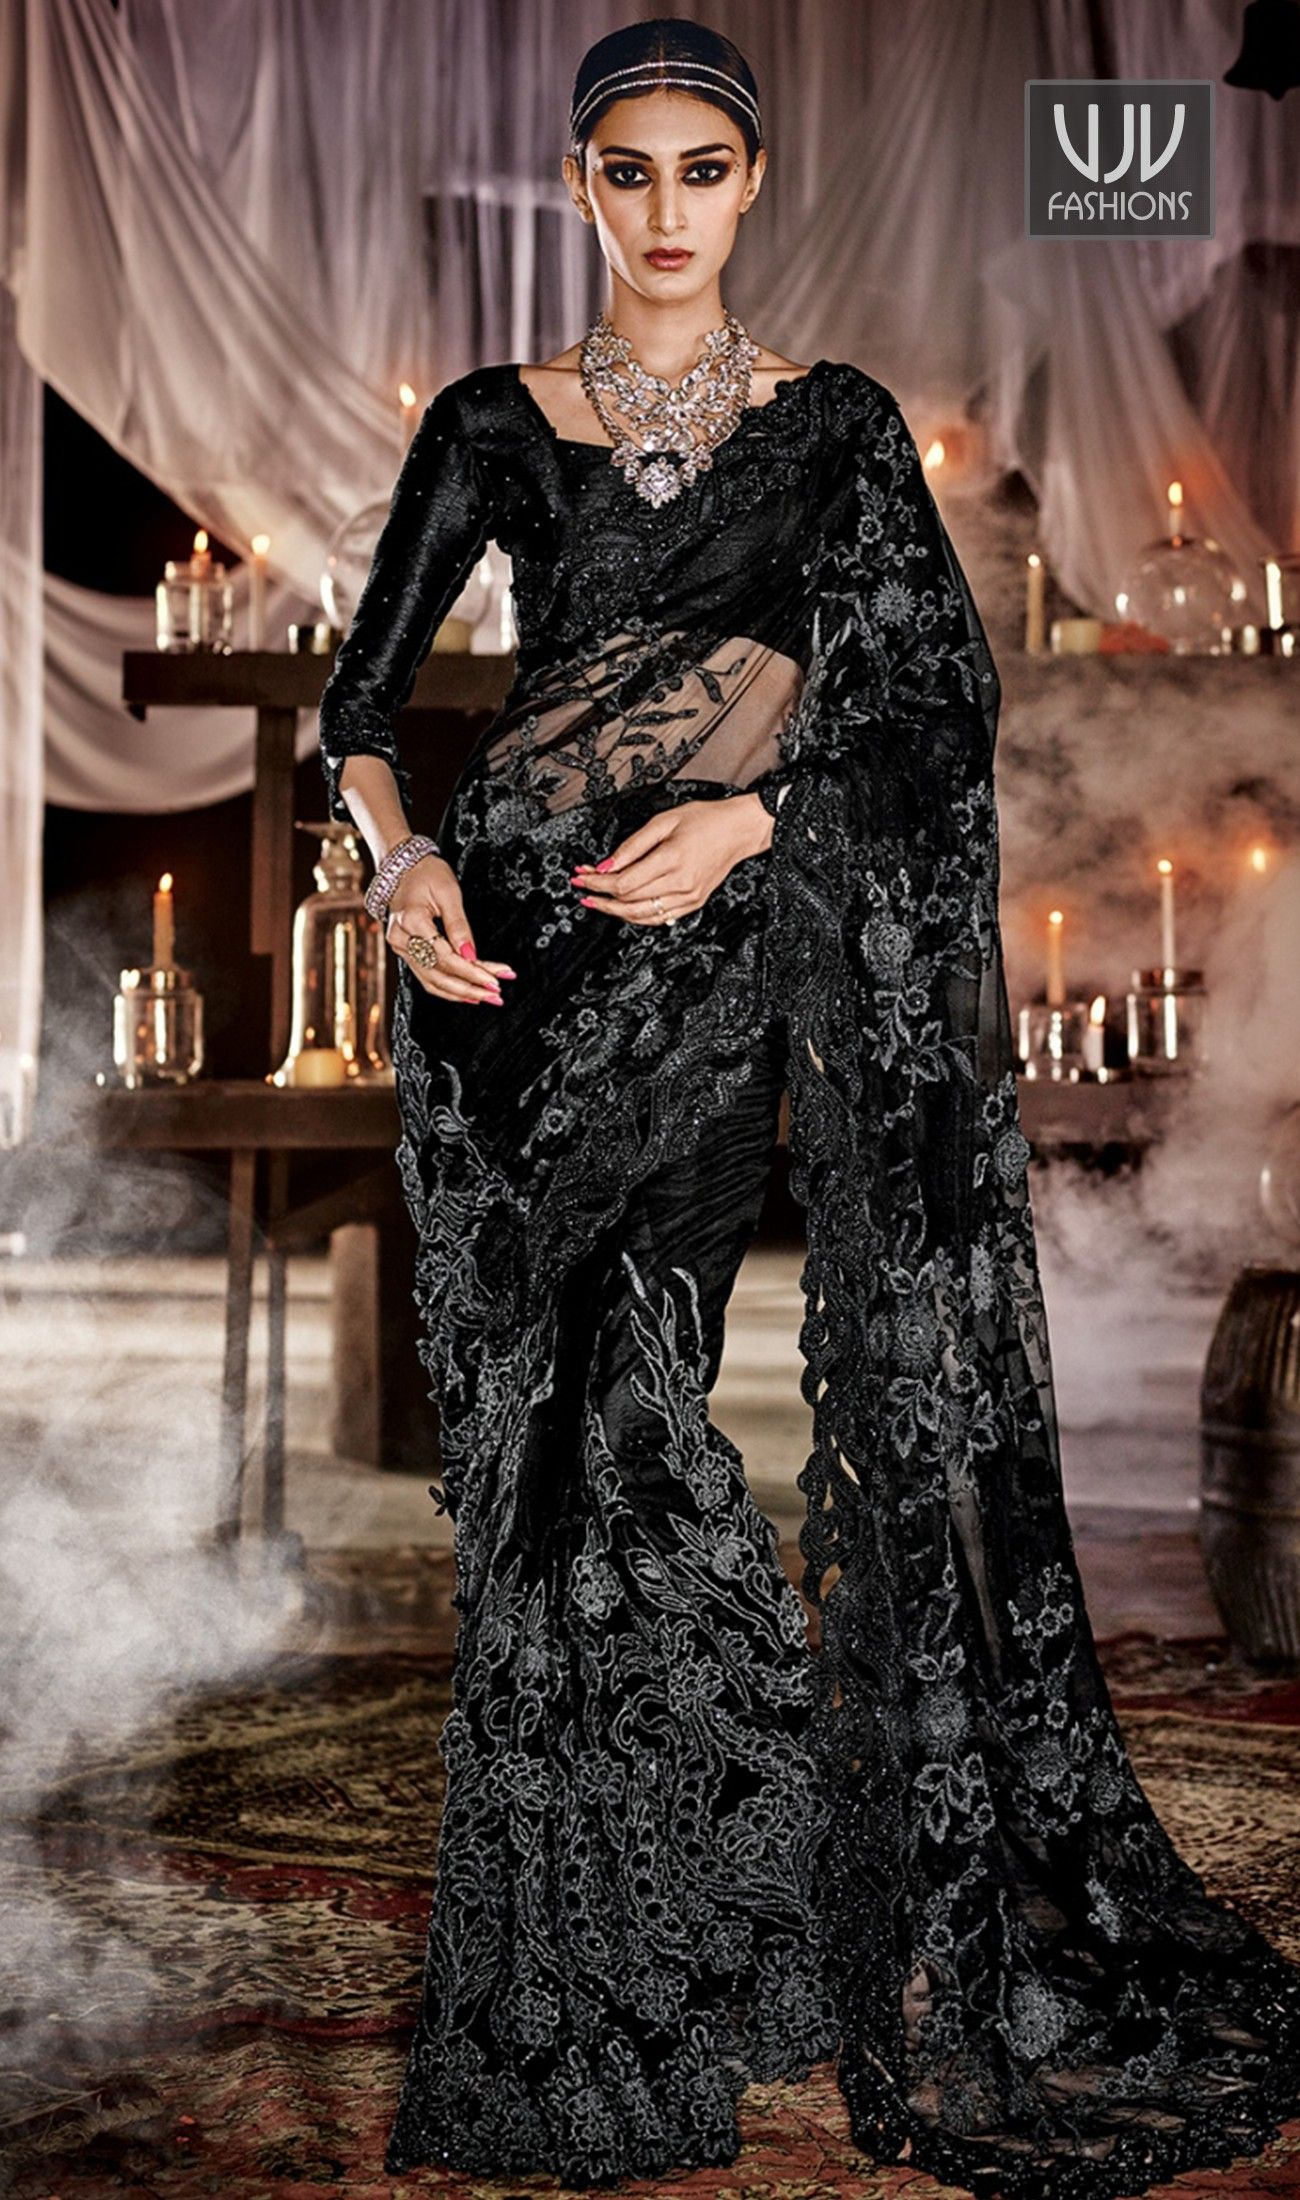 869769c87b Aesthetic Black Color Net Patch Border Work Designer Saree Ravishing attire  to enhance your beauty. Make an adorable statement in this smashy black net  ...